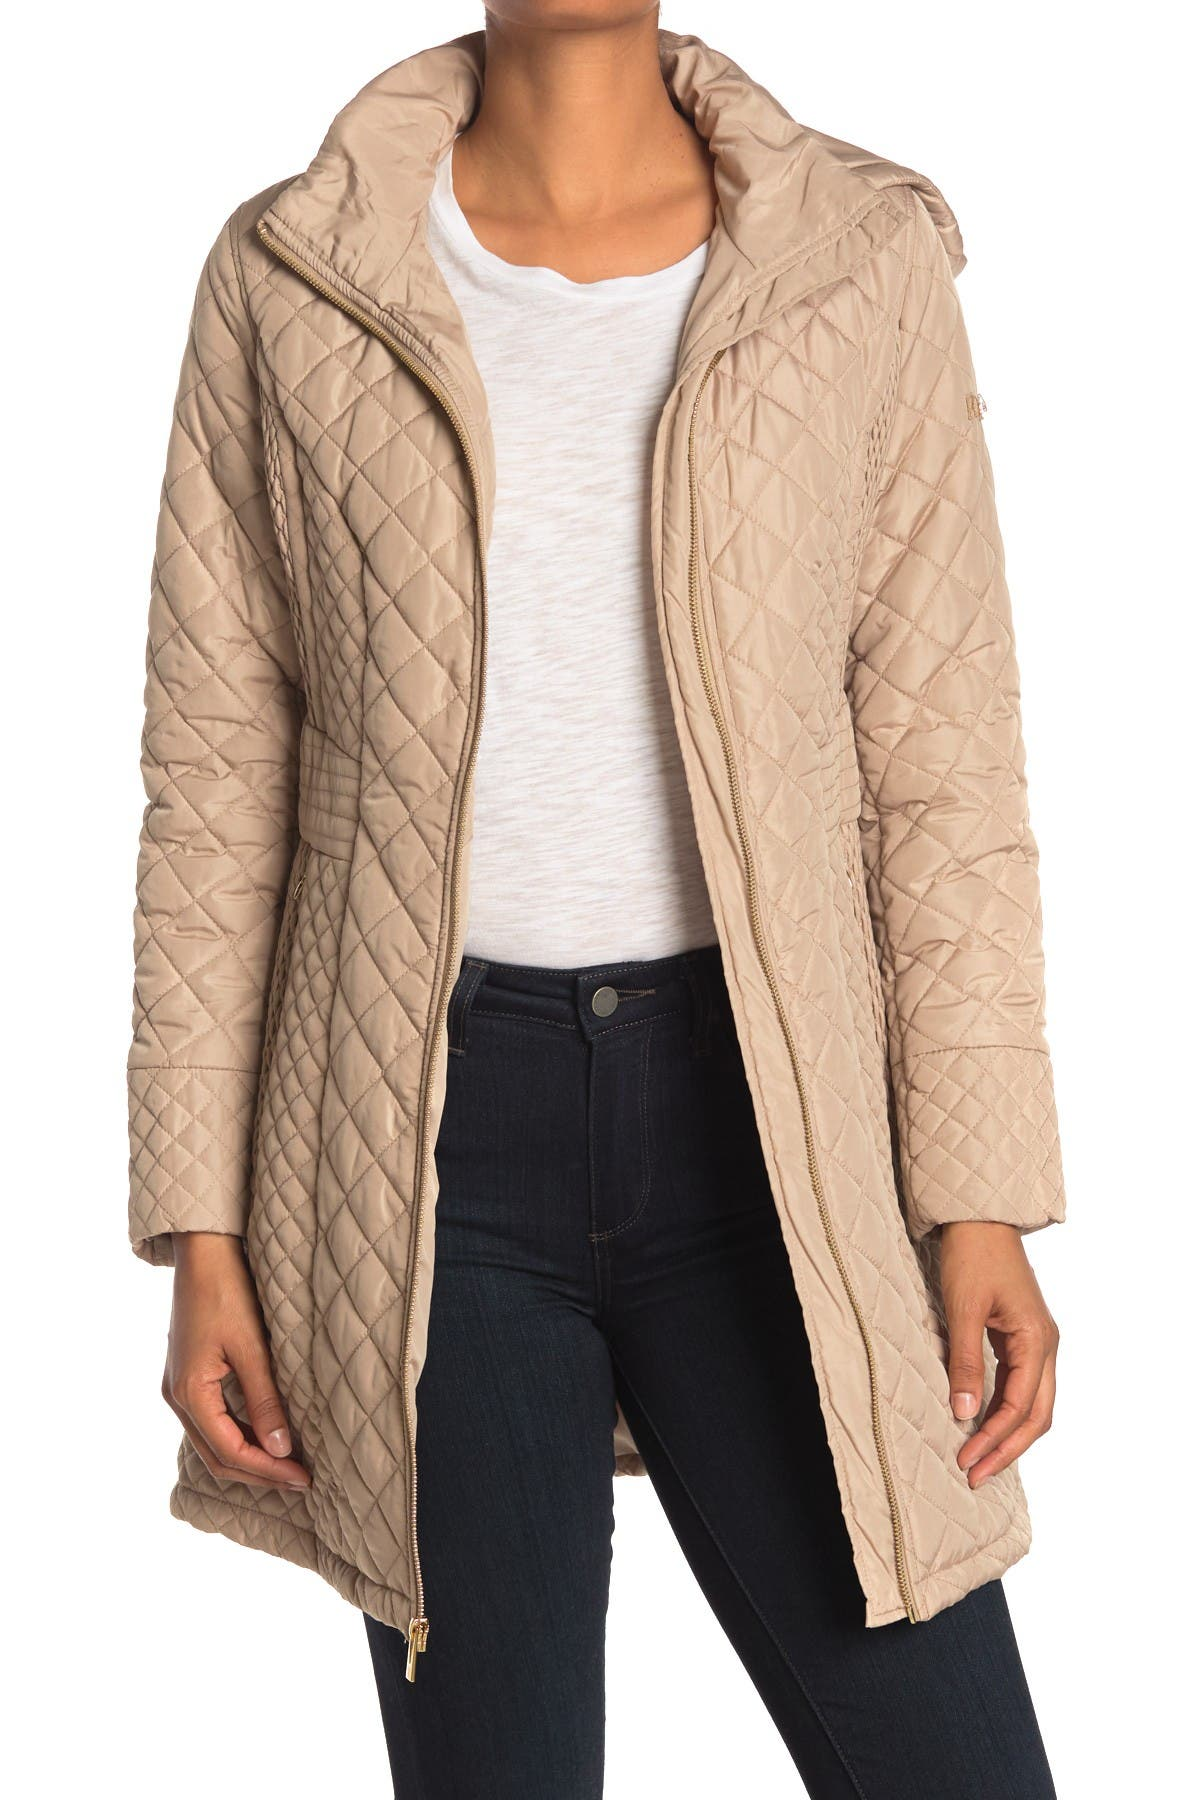 Image of Via Spiga Hooded Quilted Jacket